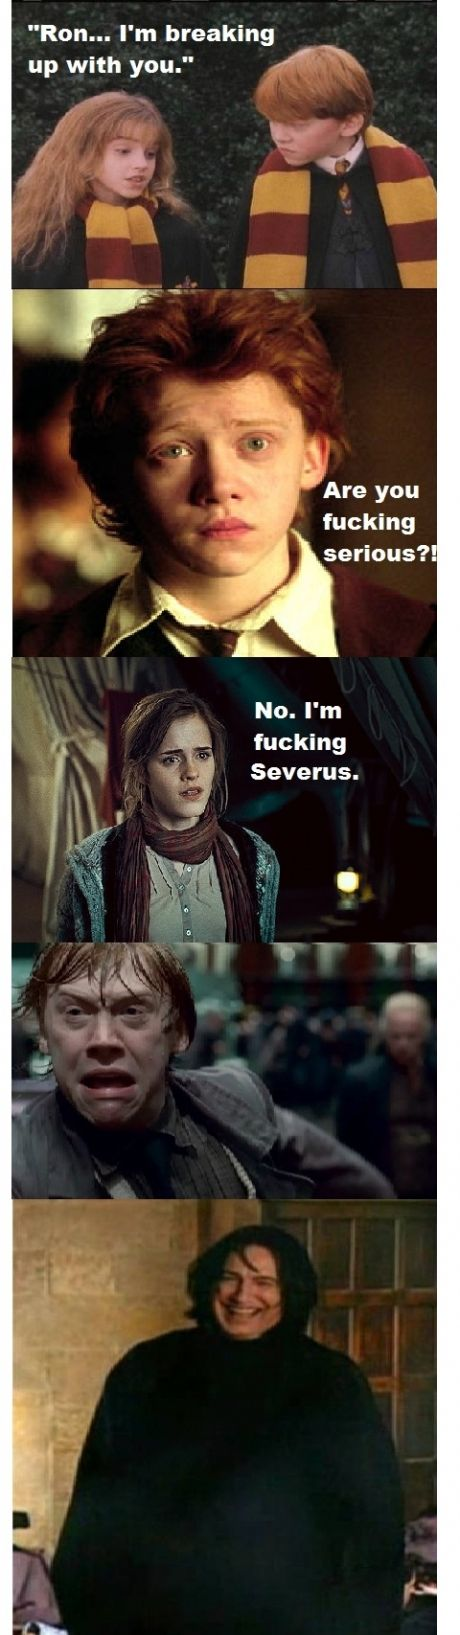 This made me laugh too hard.